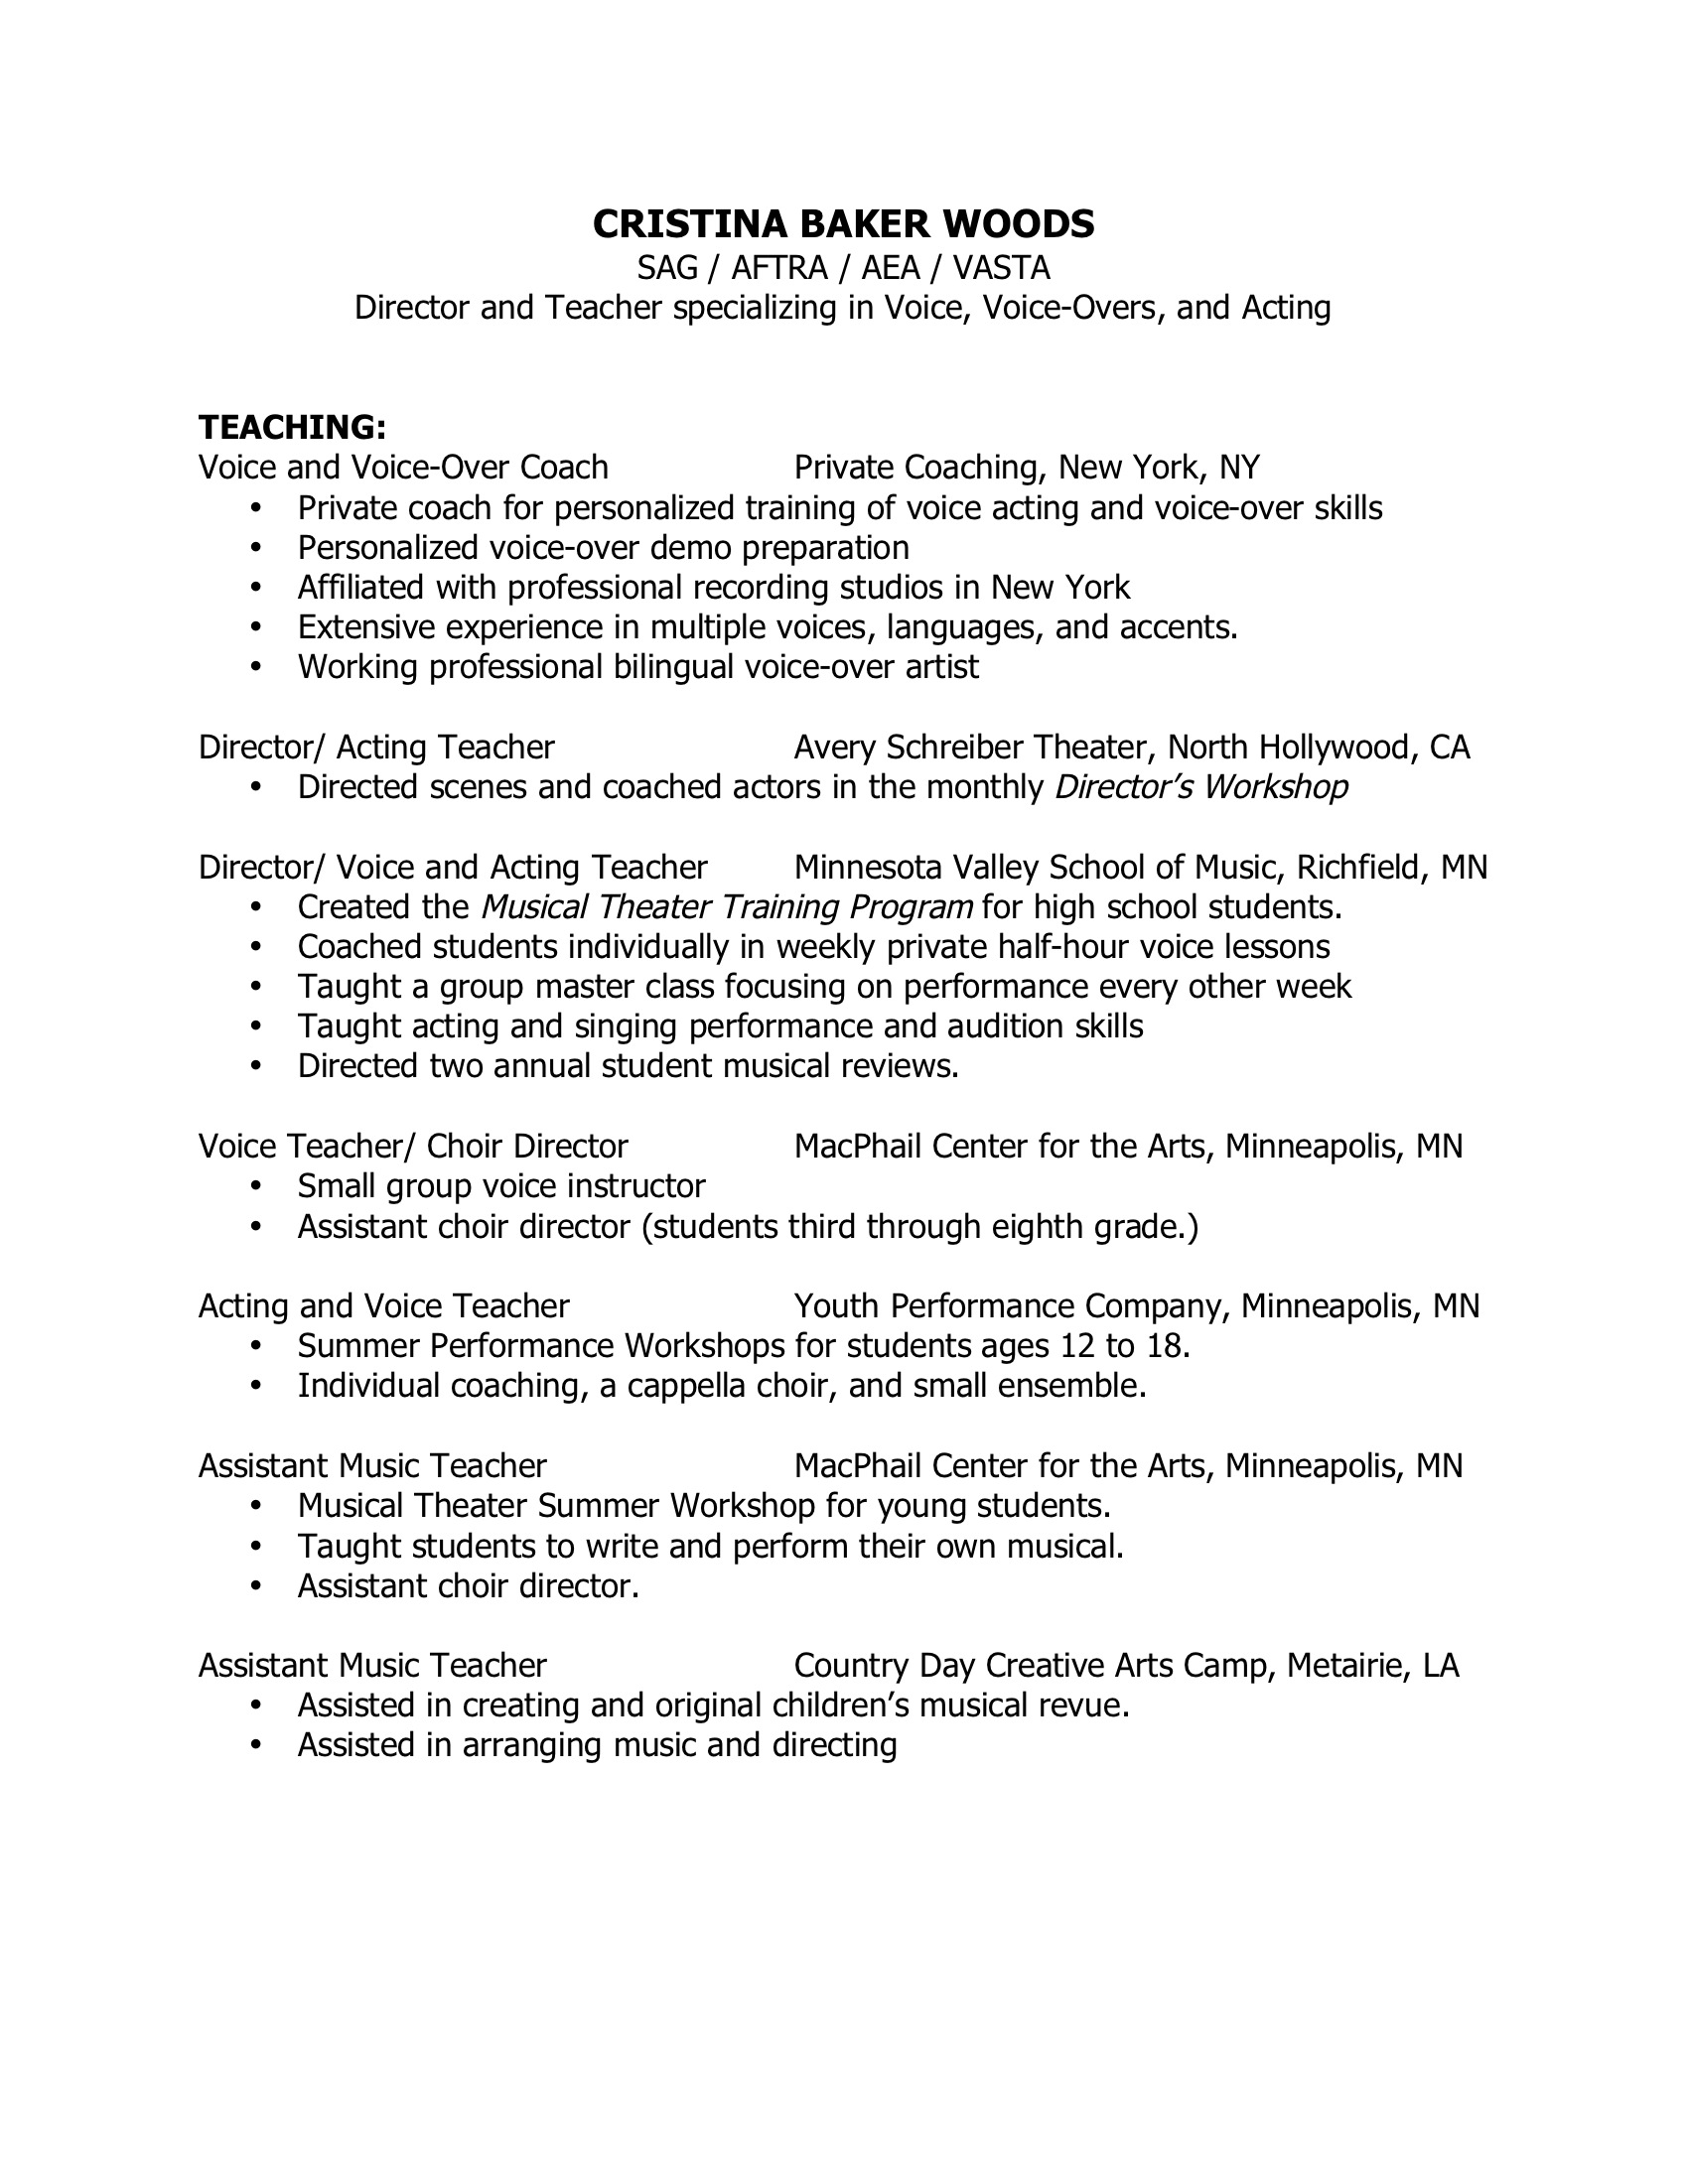 Teaching/Directing Resume | Cristina Baker Woods